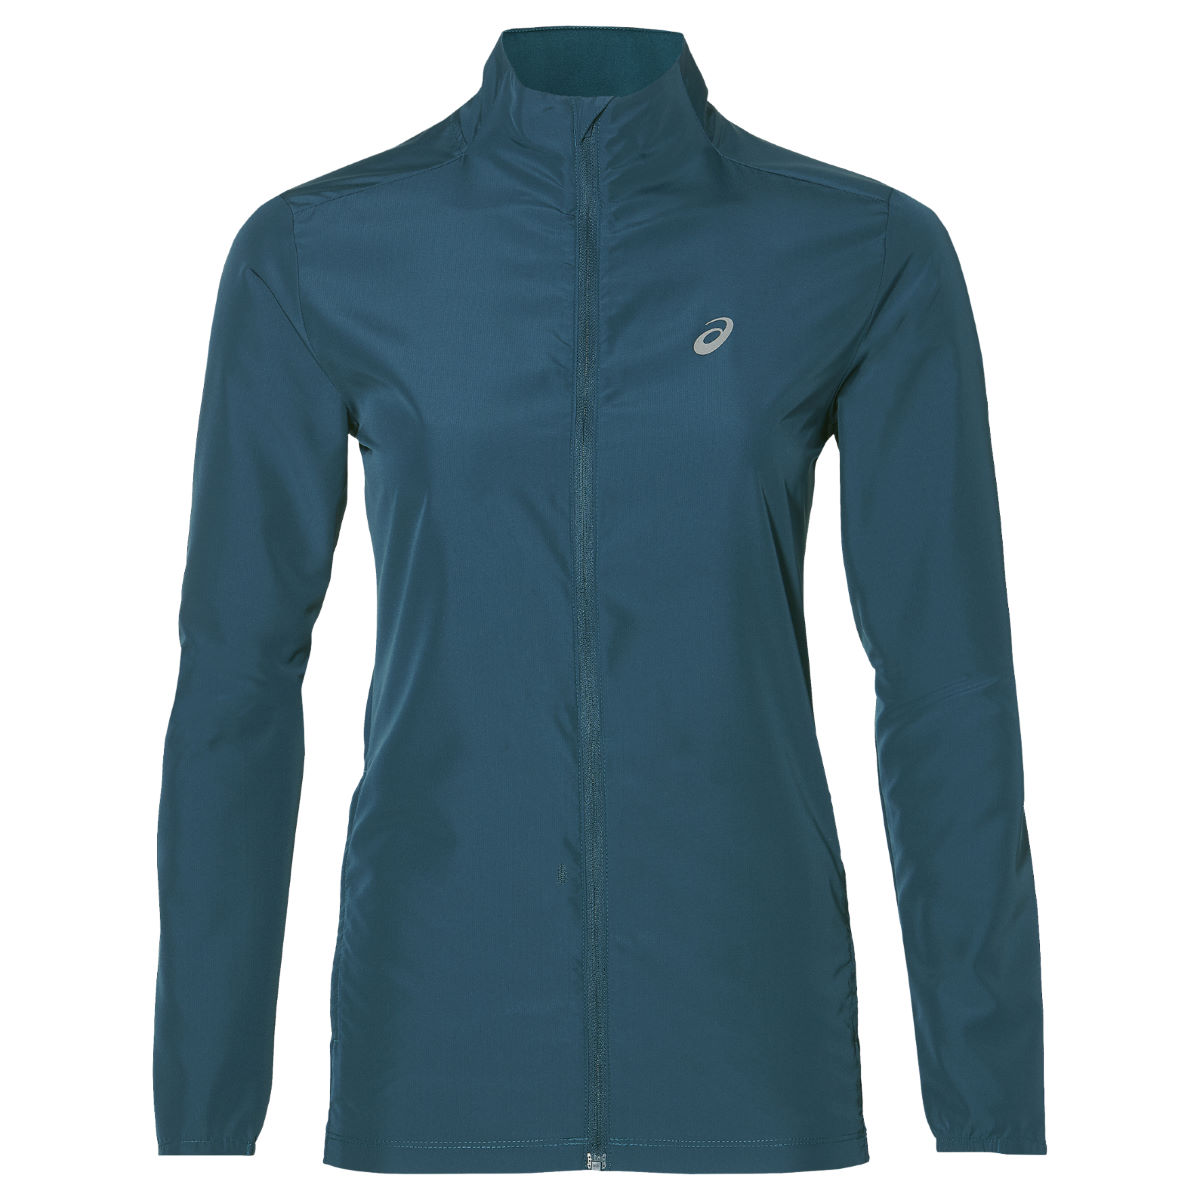 Veste Femme Asics - Medium Blue Steel Vestes de running coupe-vent